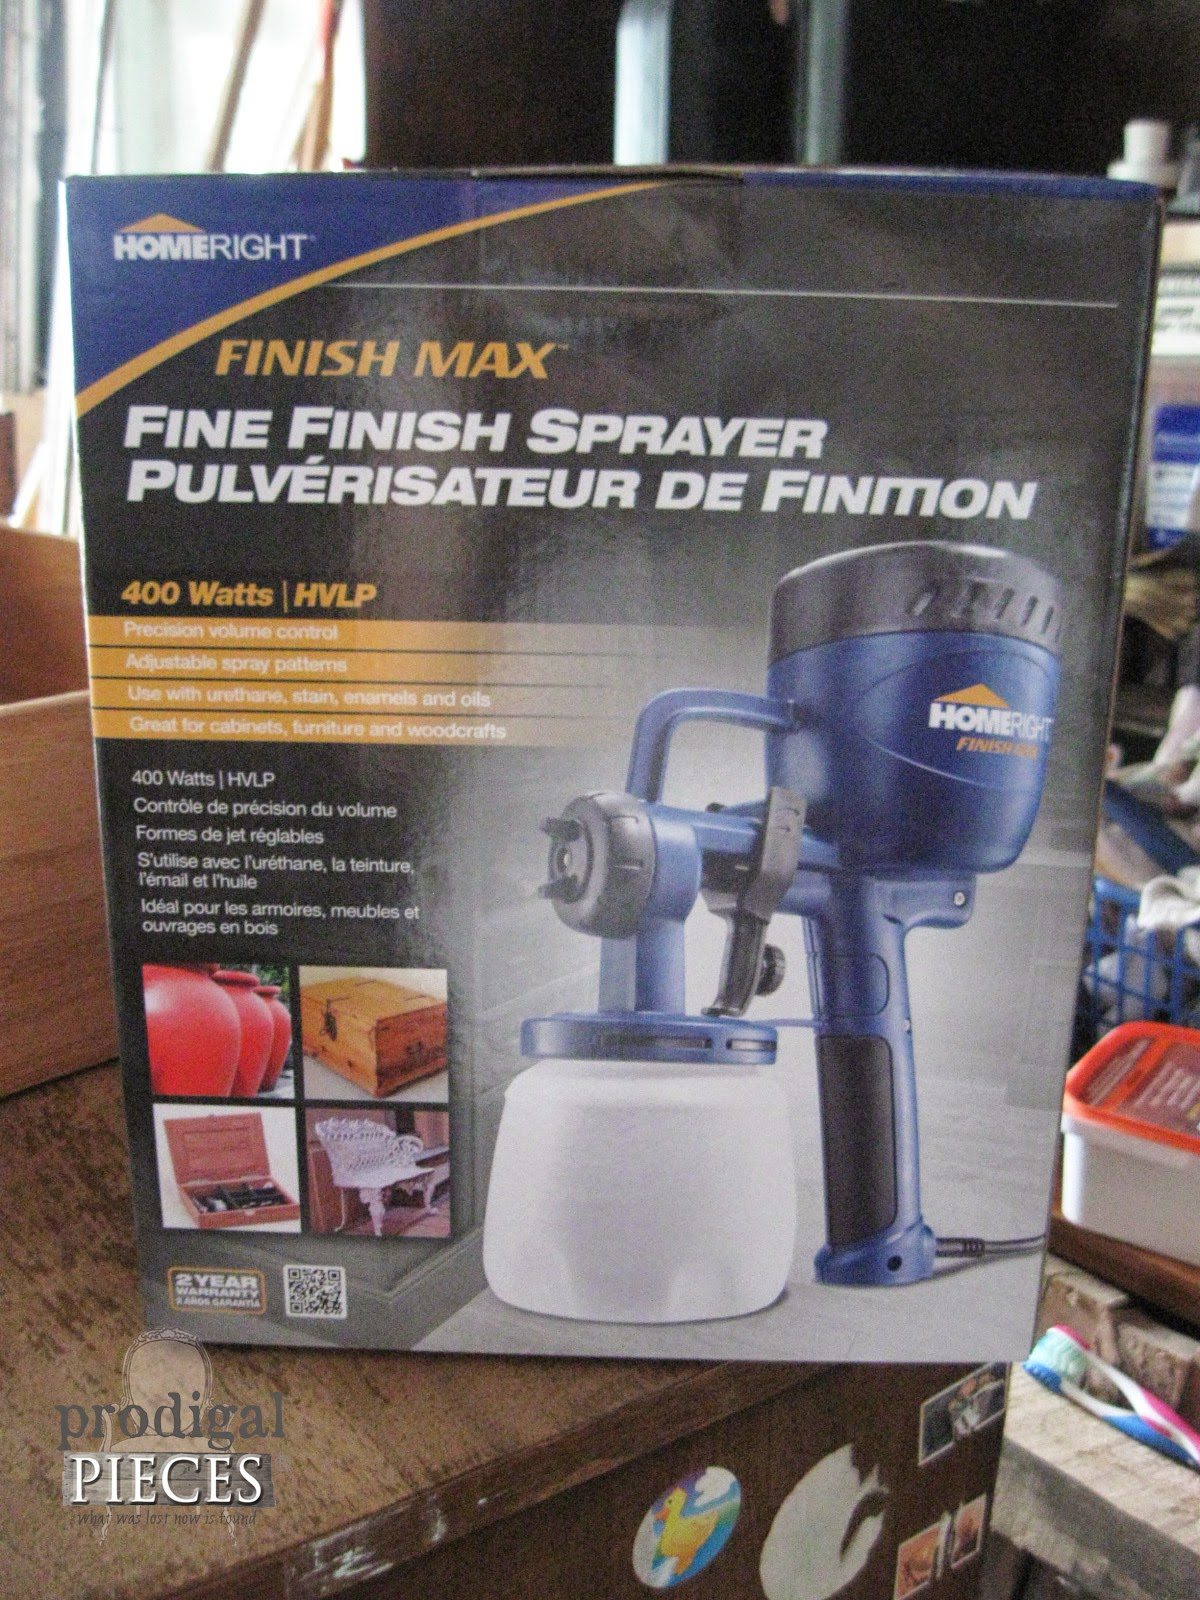 Home Right Finish Max Sprayer review coming soon by http://www.prodigalpieces.com